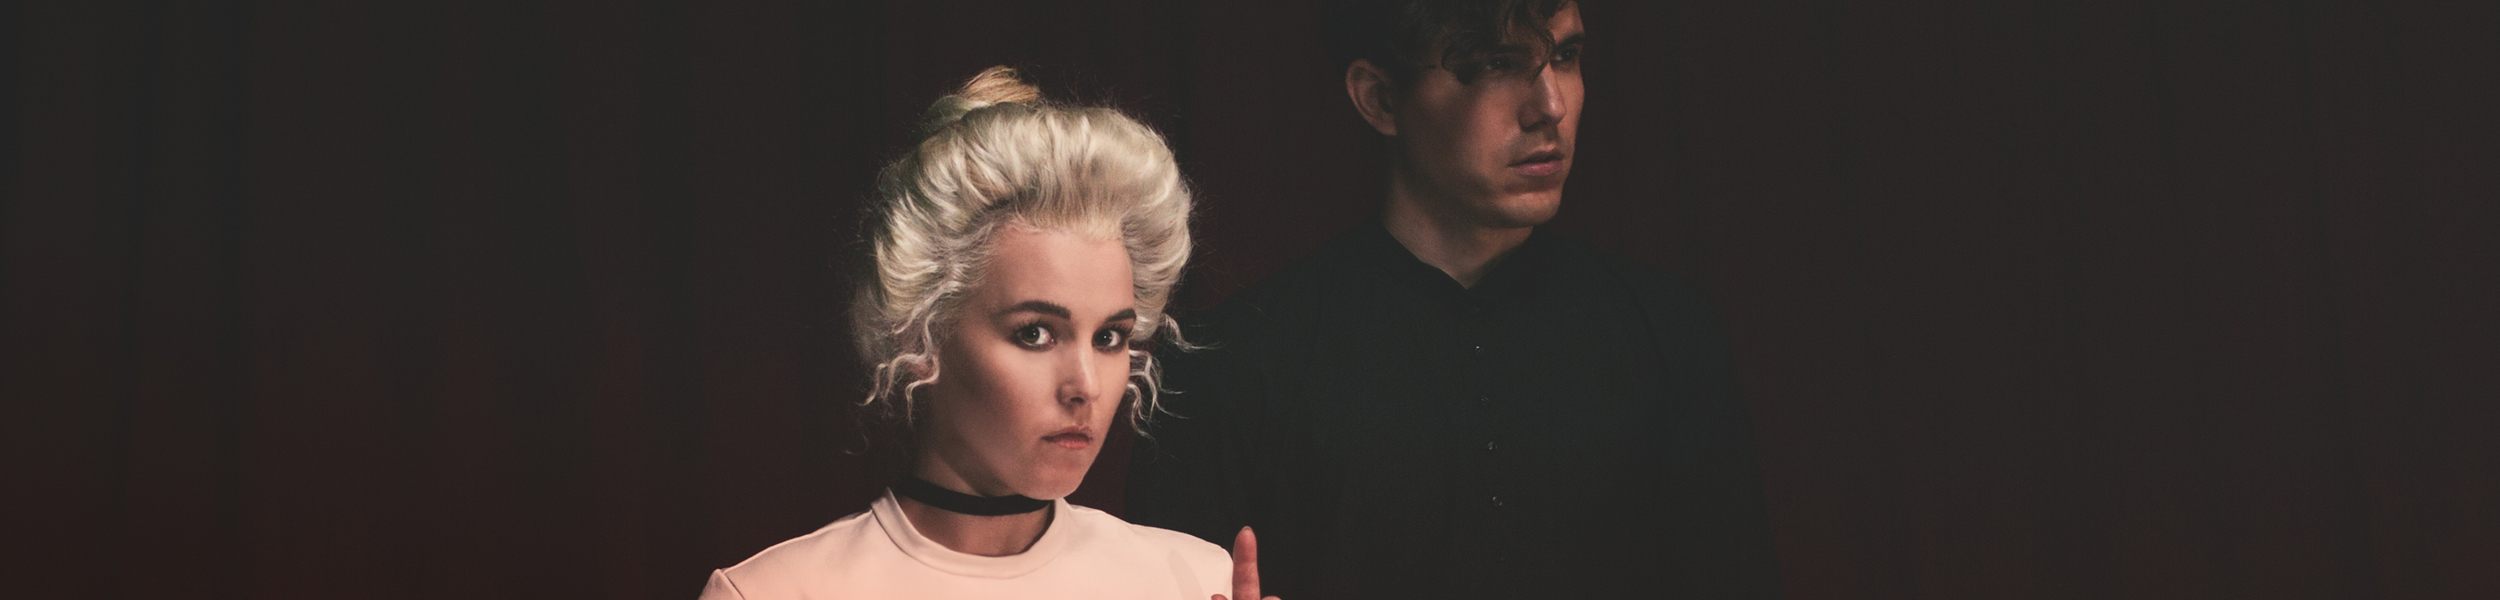 Purity Ring - Purity Ring's Debut Album, Shrines, Released This Week